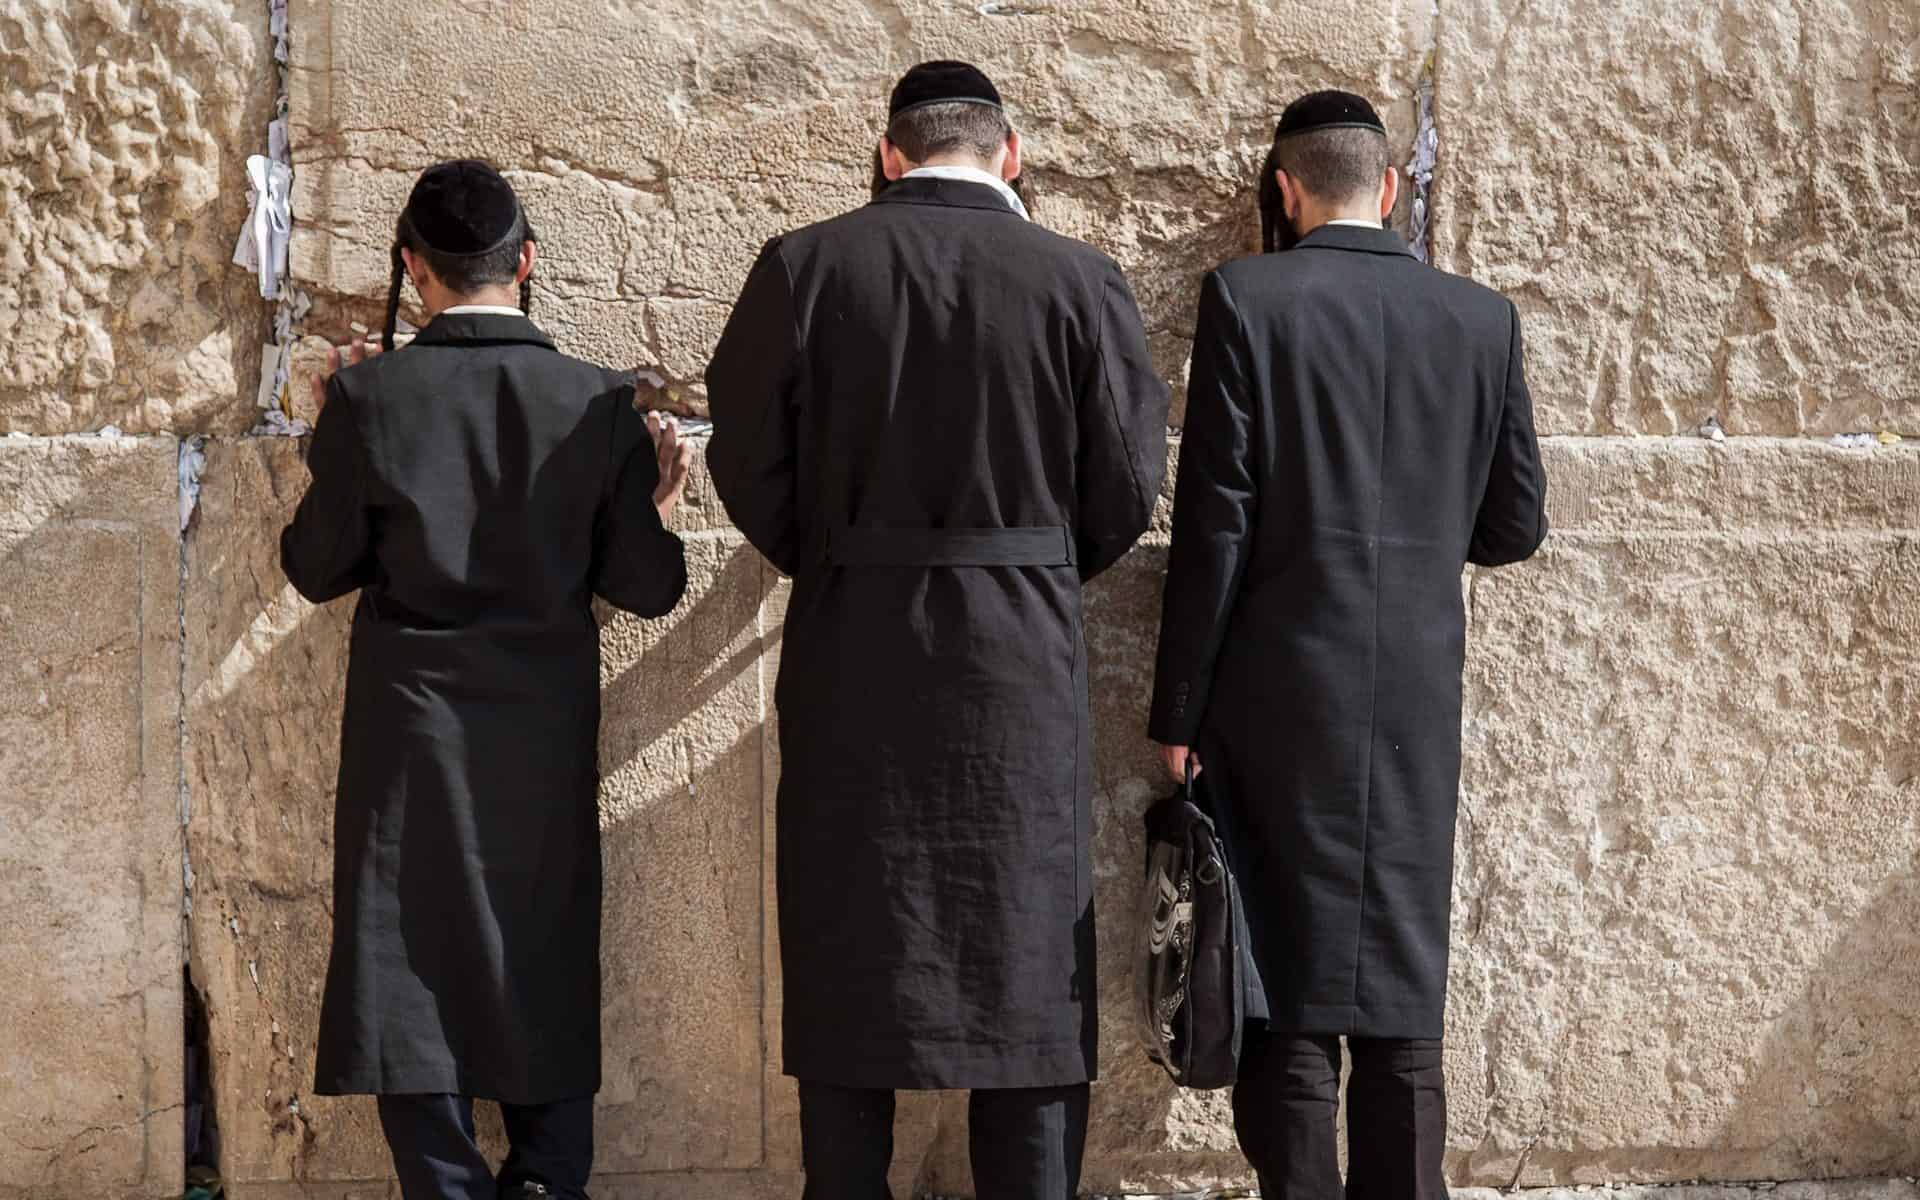 Davening: A Satanic, Perverted Practice at the Wailing Wall